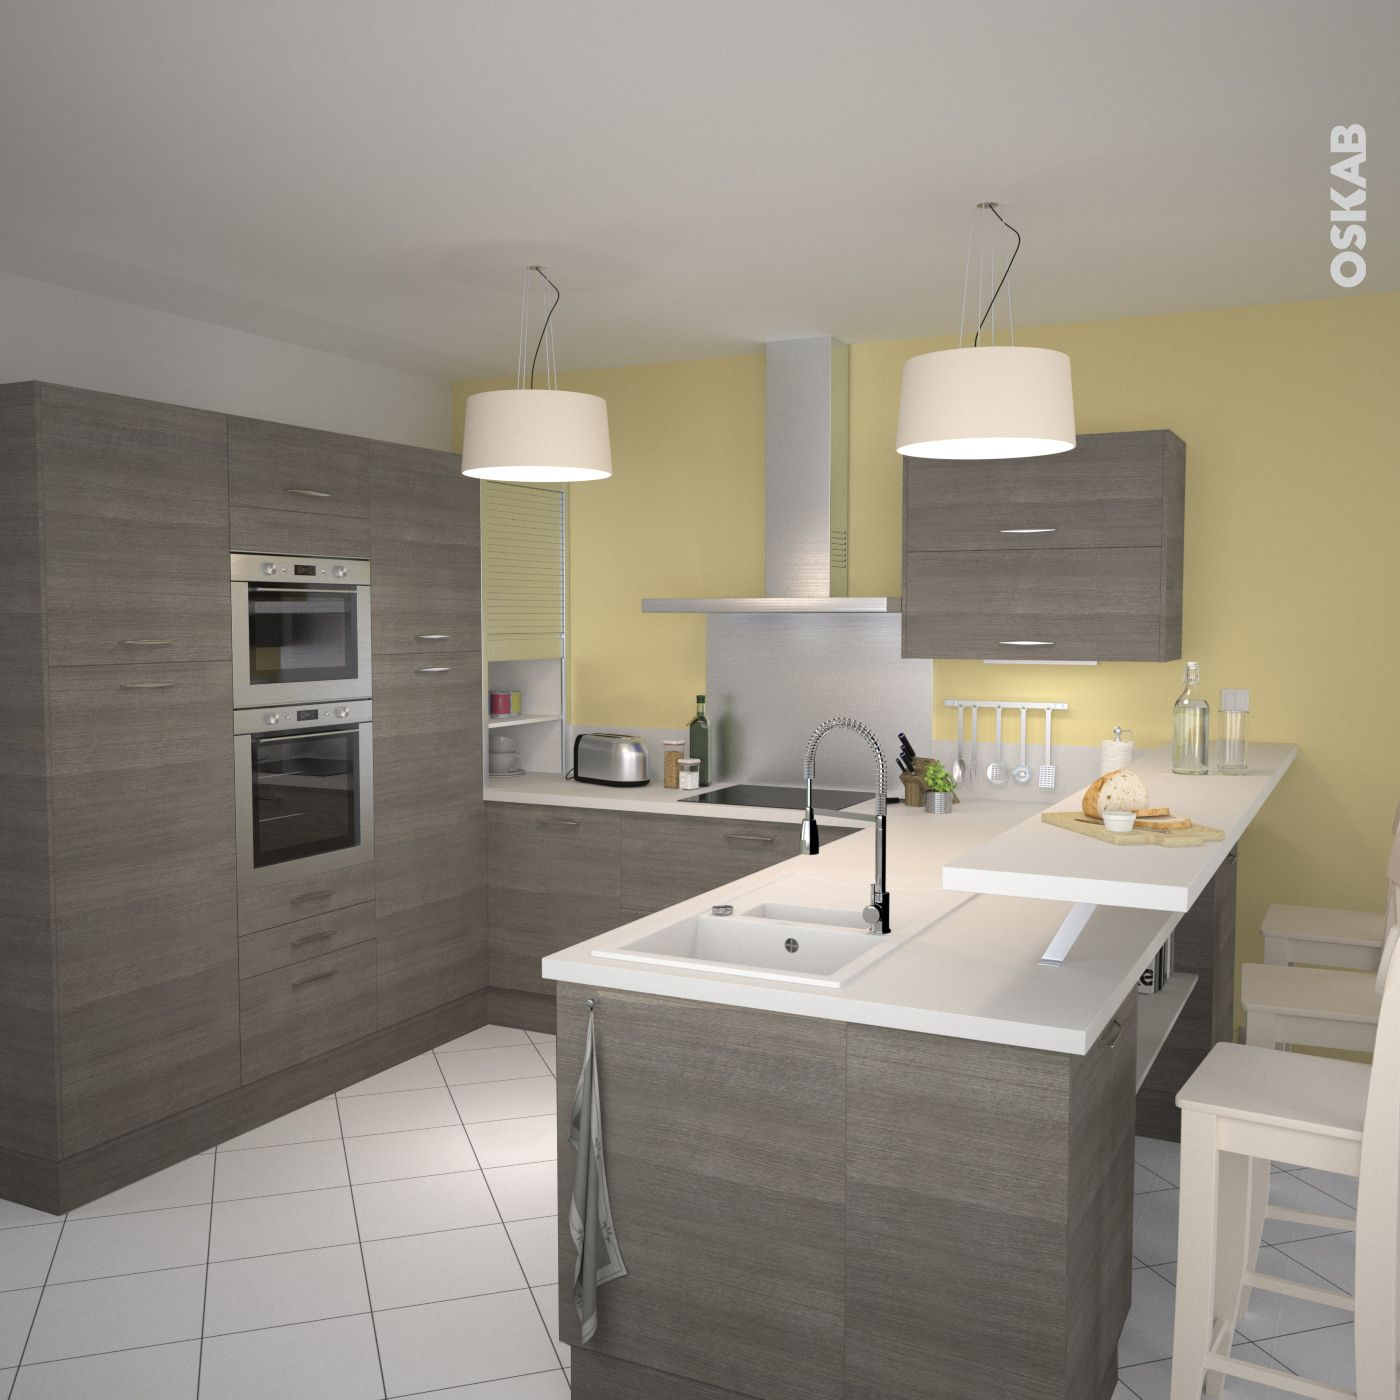 Cuisine en bois structur stilo noyer naturel kitchens for Plan de cuisine moderne